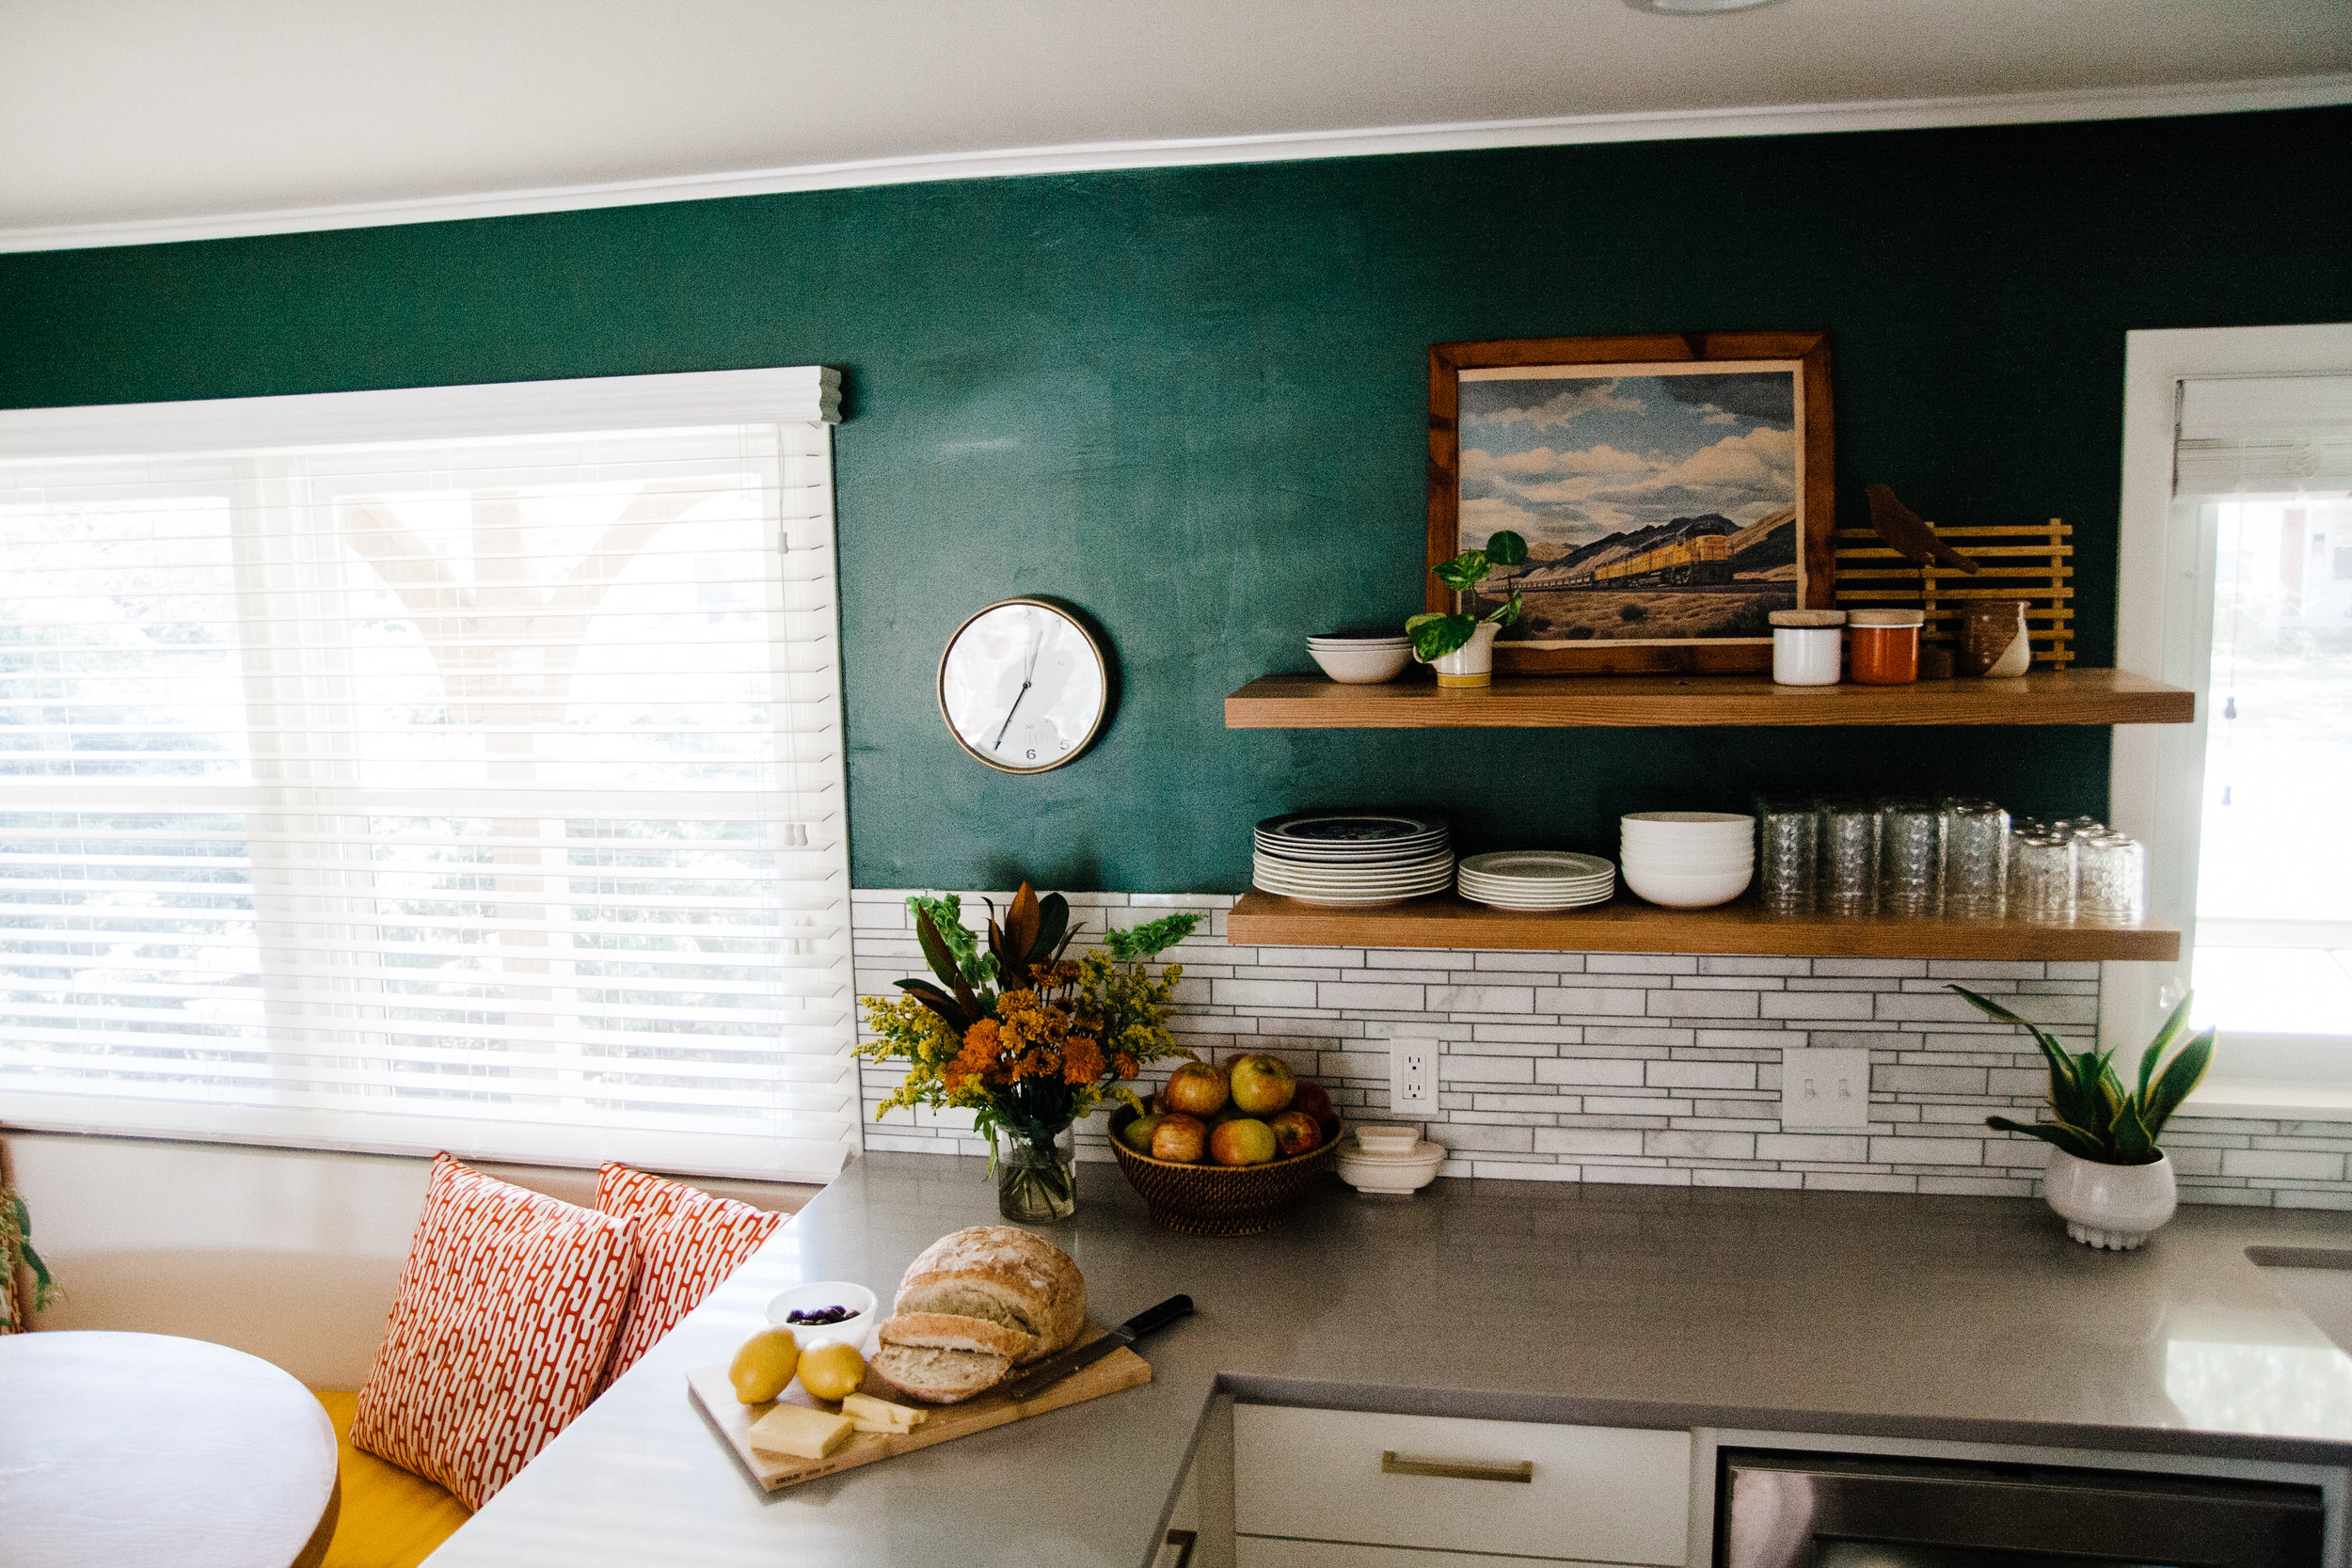 I'm glad that I didn't chicken out on painting the walls green.I love the blend of colors we have going on while still maintaining the light, calm and airy feel.